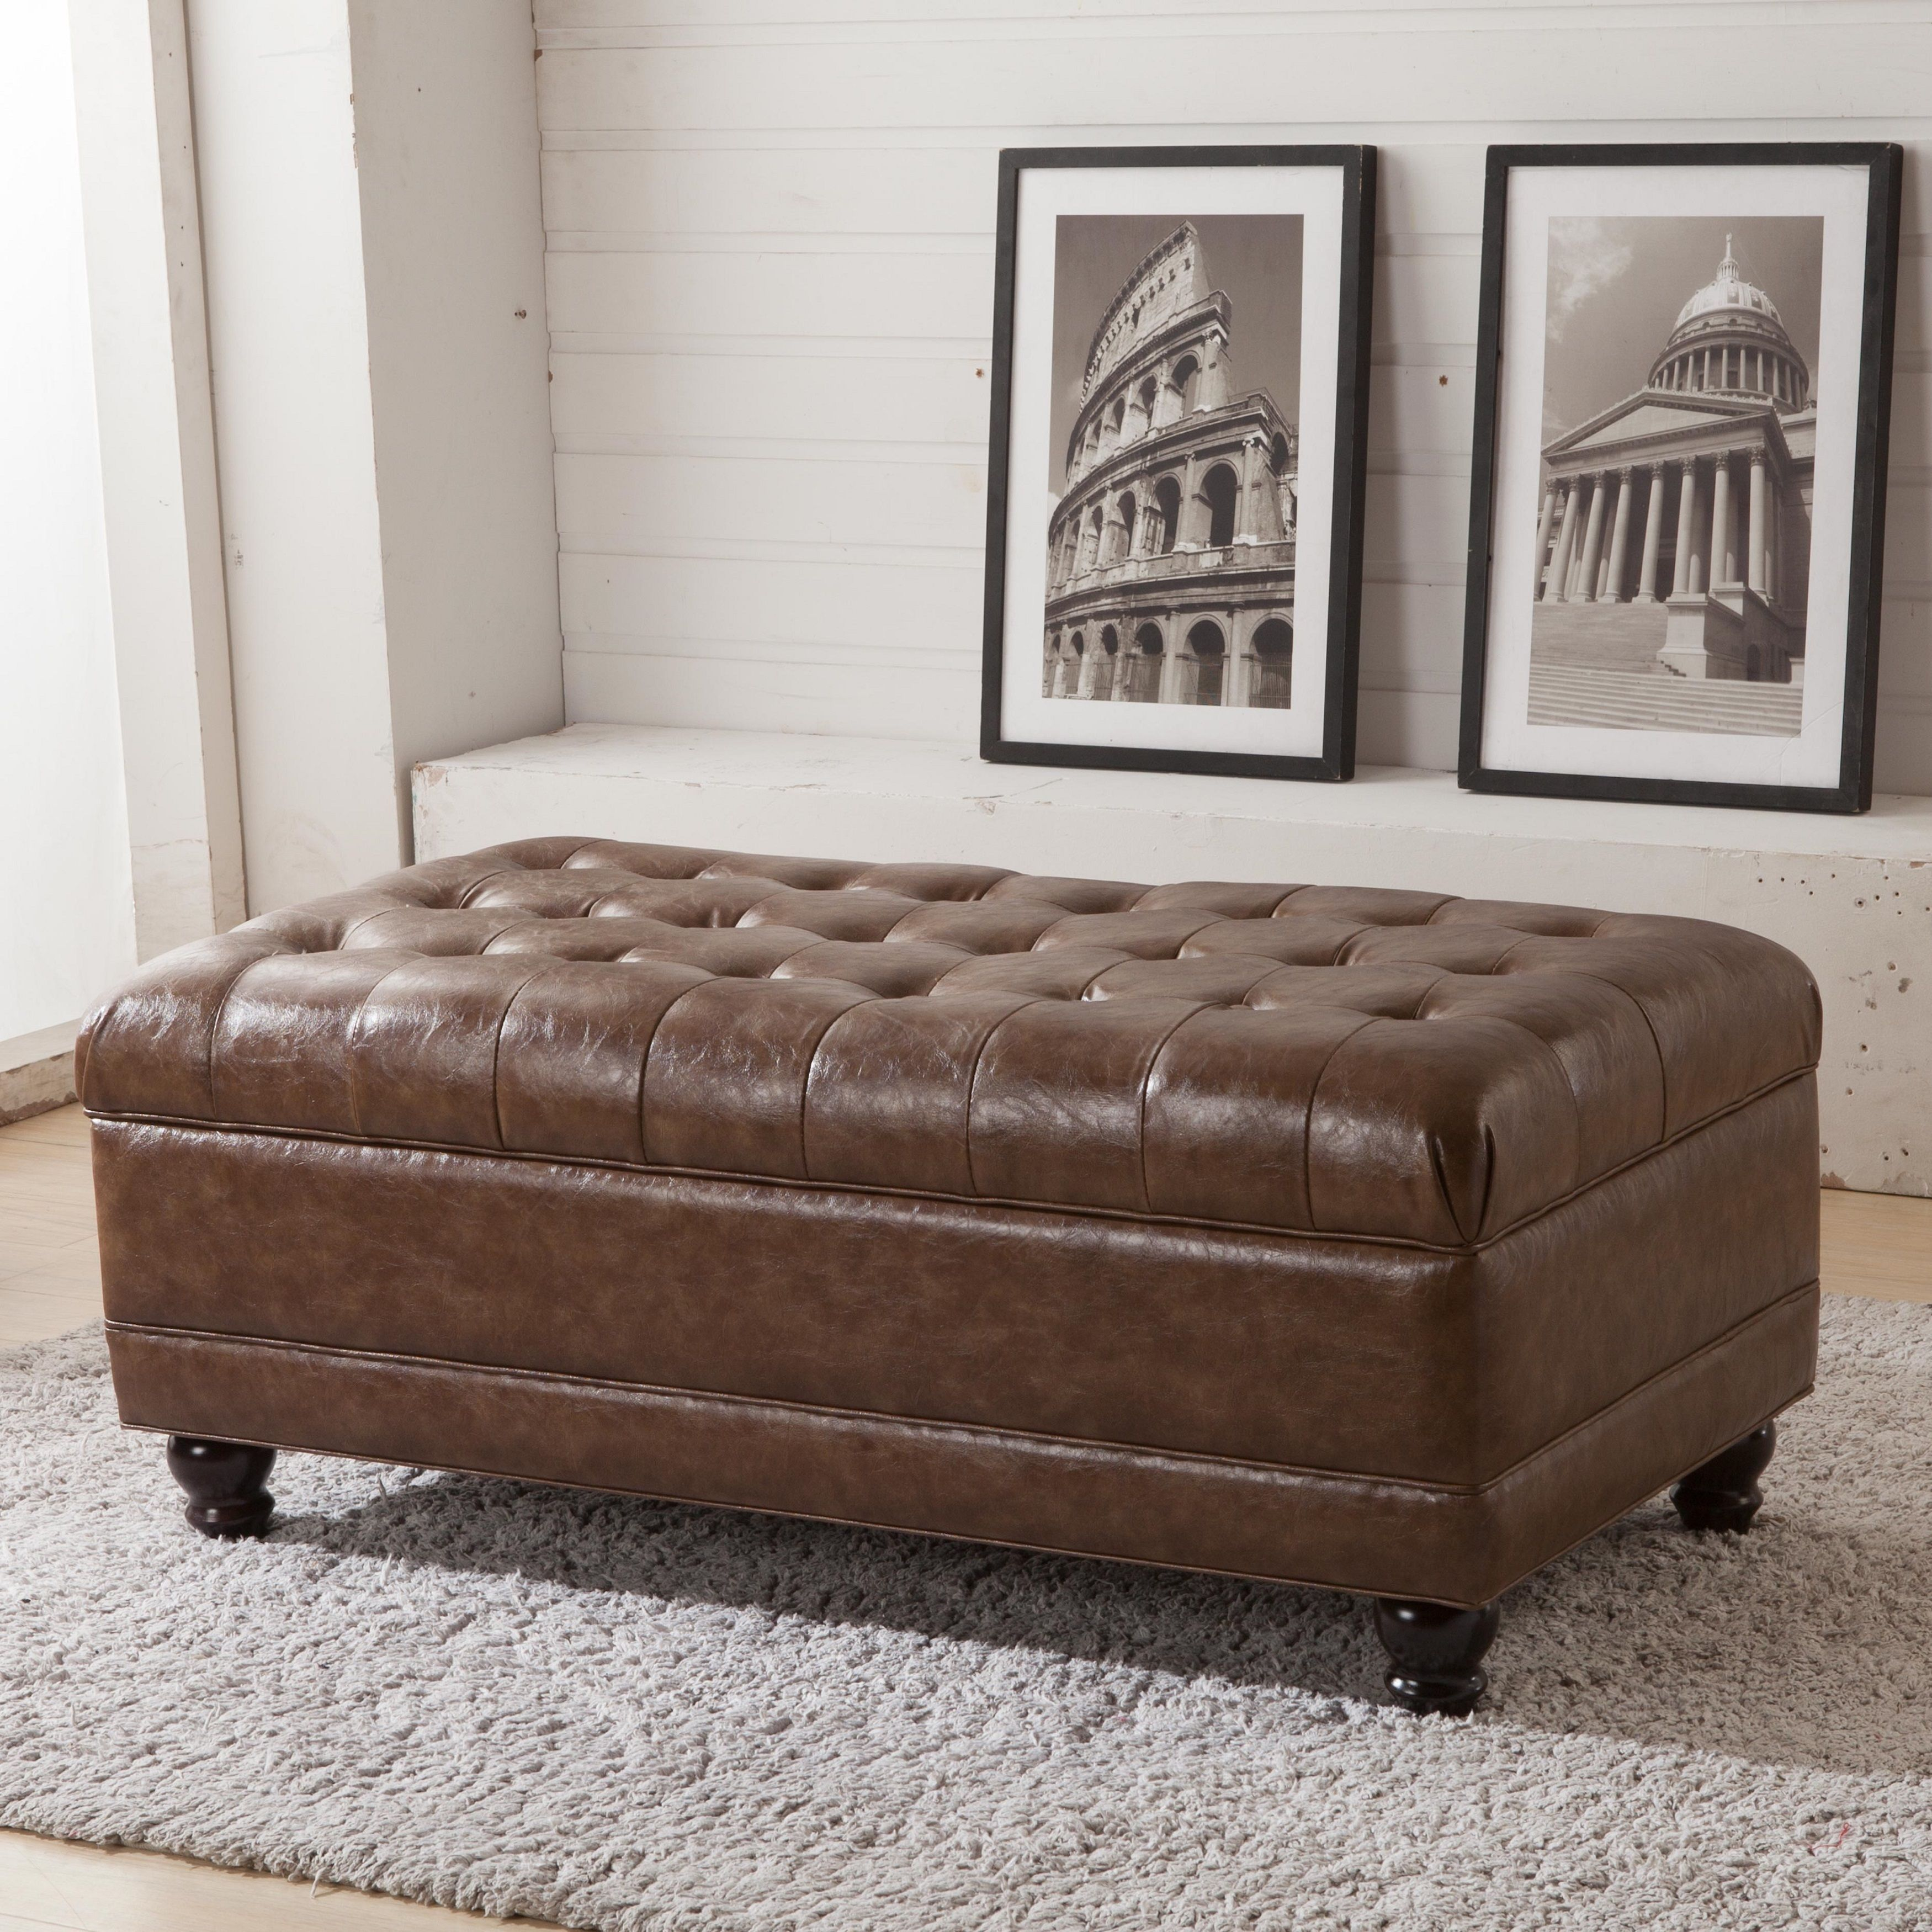 The button-tufted storage bench ottoman offers a tufted, pillowy ...